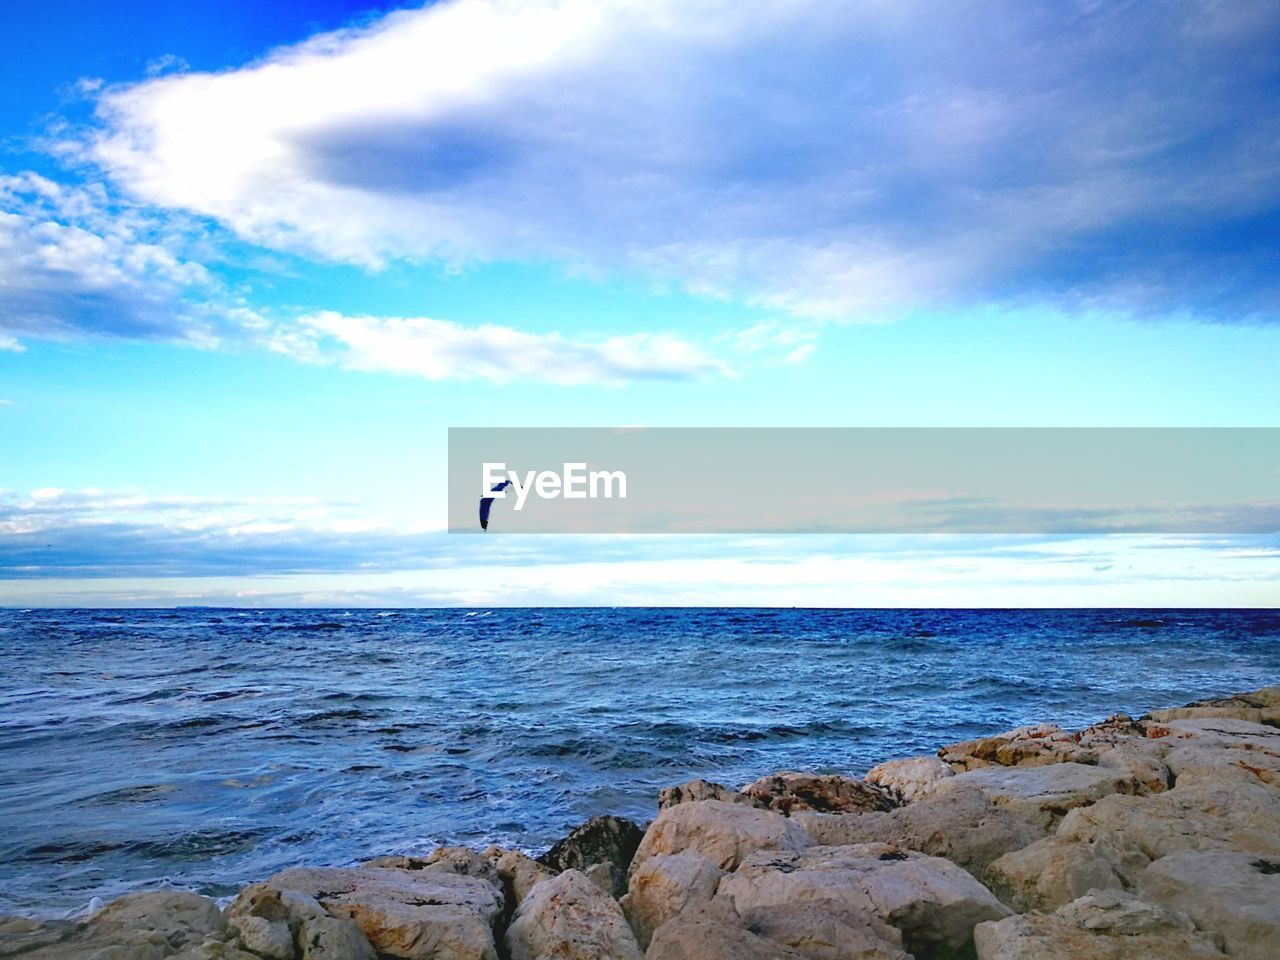 sea, sky, cloud - sky, water, horizon over water, beauty in nature, horizon, scenics - nature, beach, land, day, rock, tranquility, tranquil scene, nature, rock - object, adventure, animals in the wild, sport, outdoors